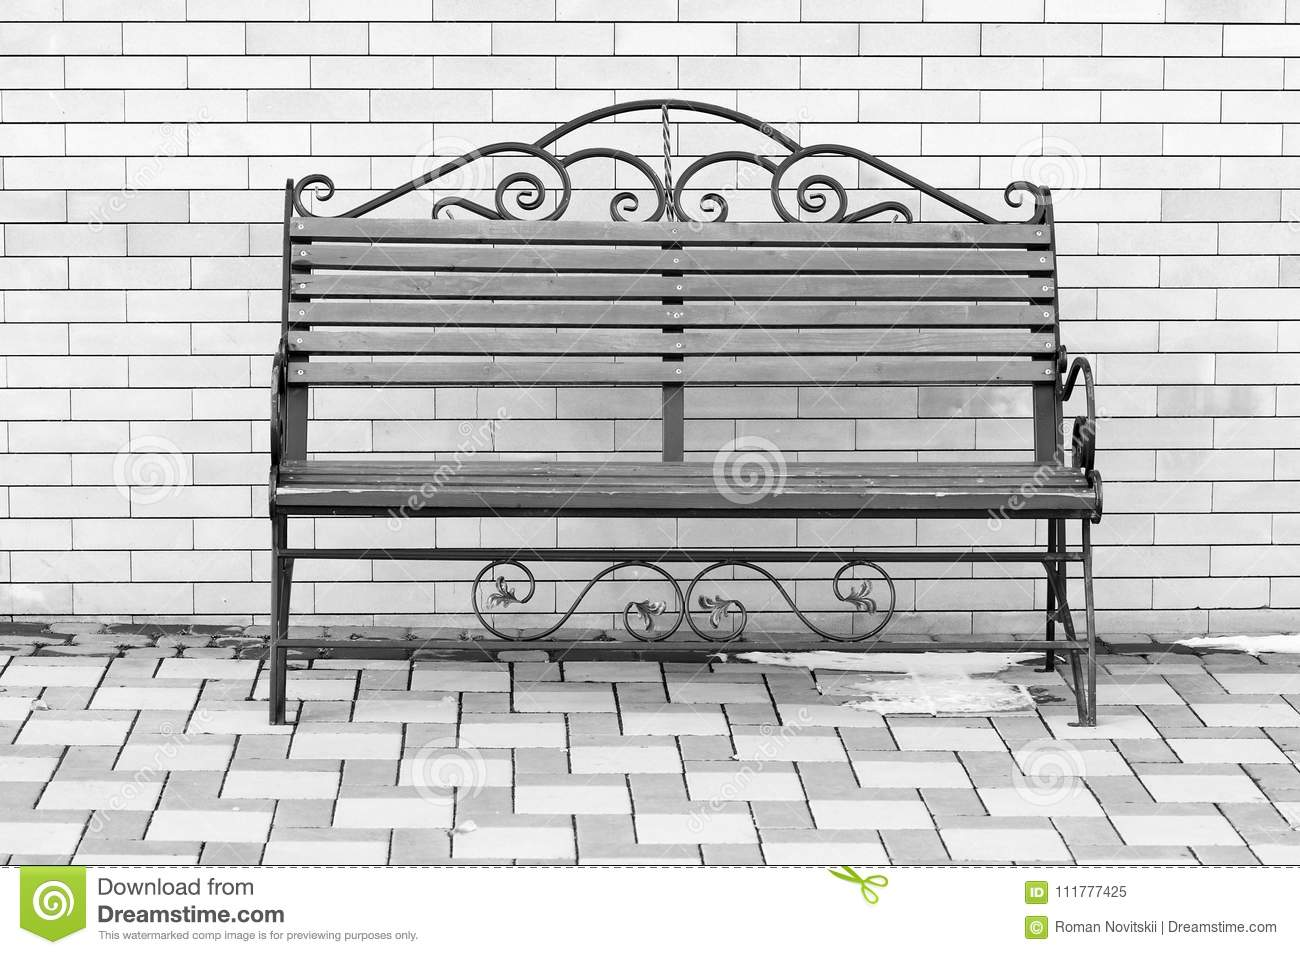 Bench in Park on a background of brick walls. Black and white image.